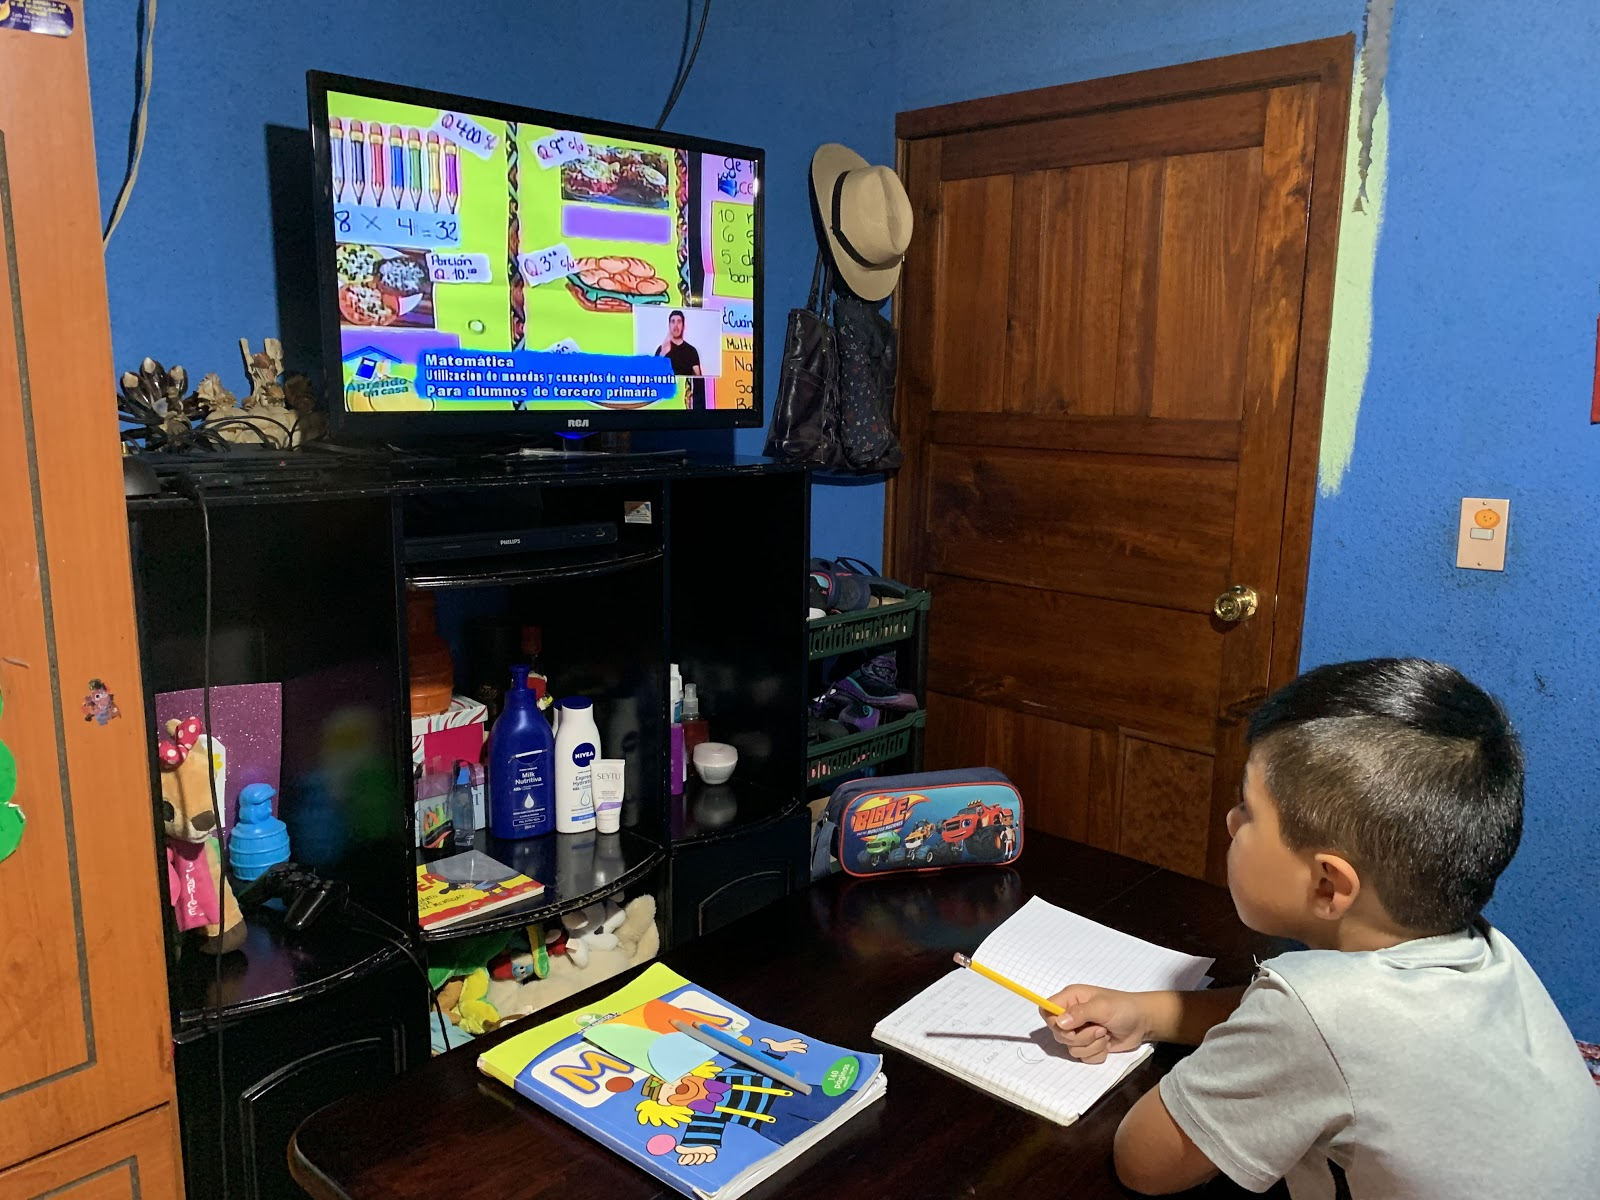 Child doing homework and watching television